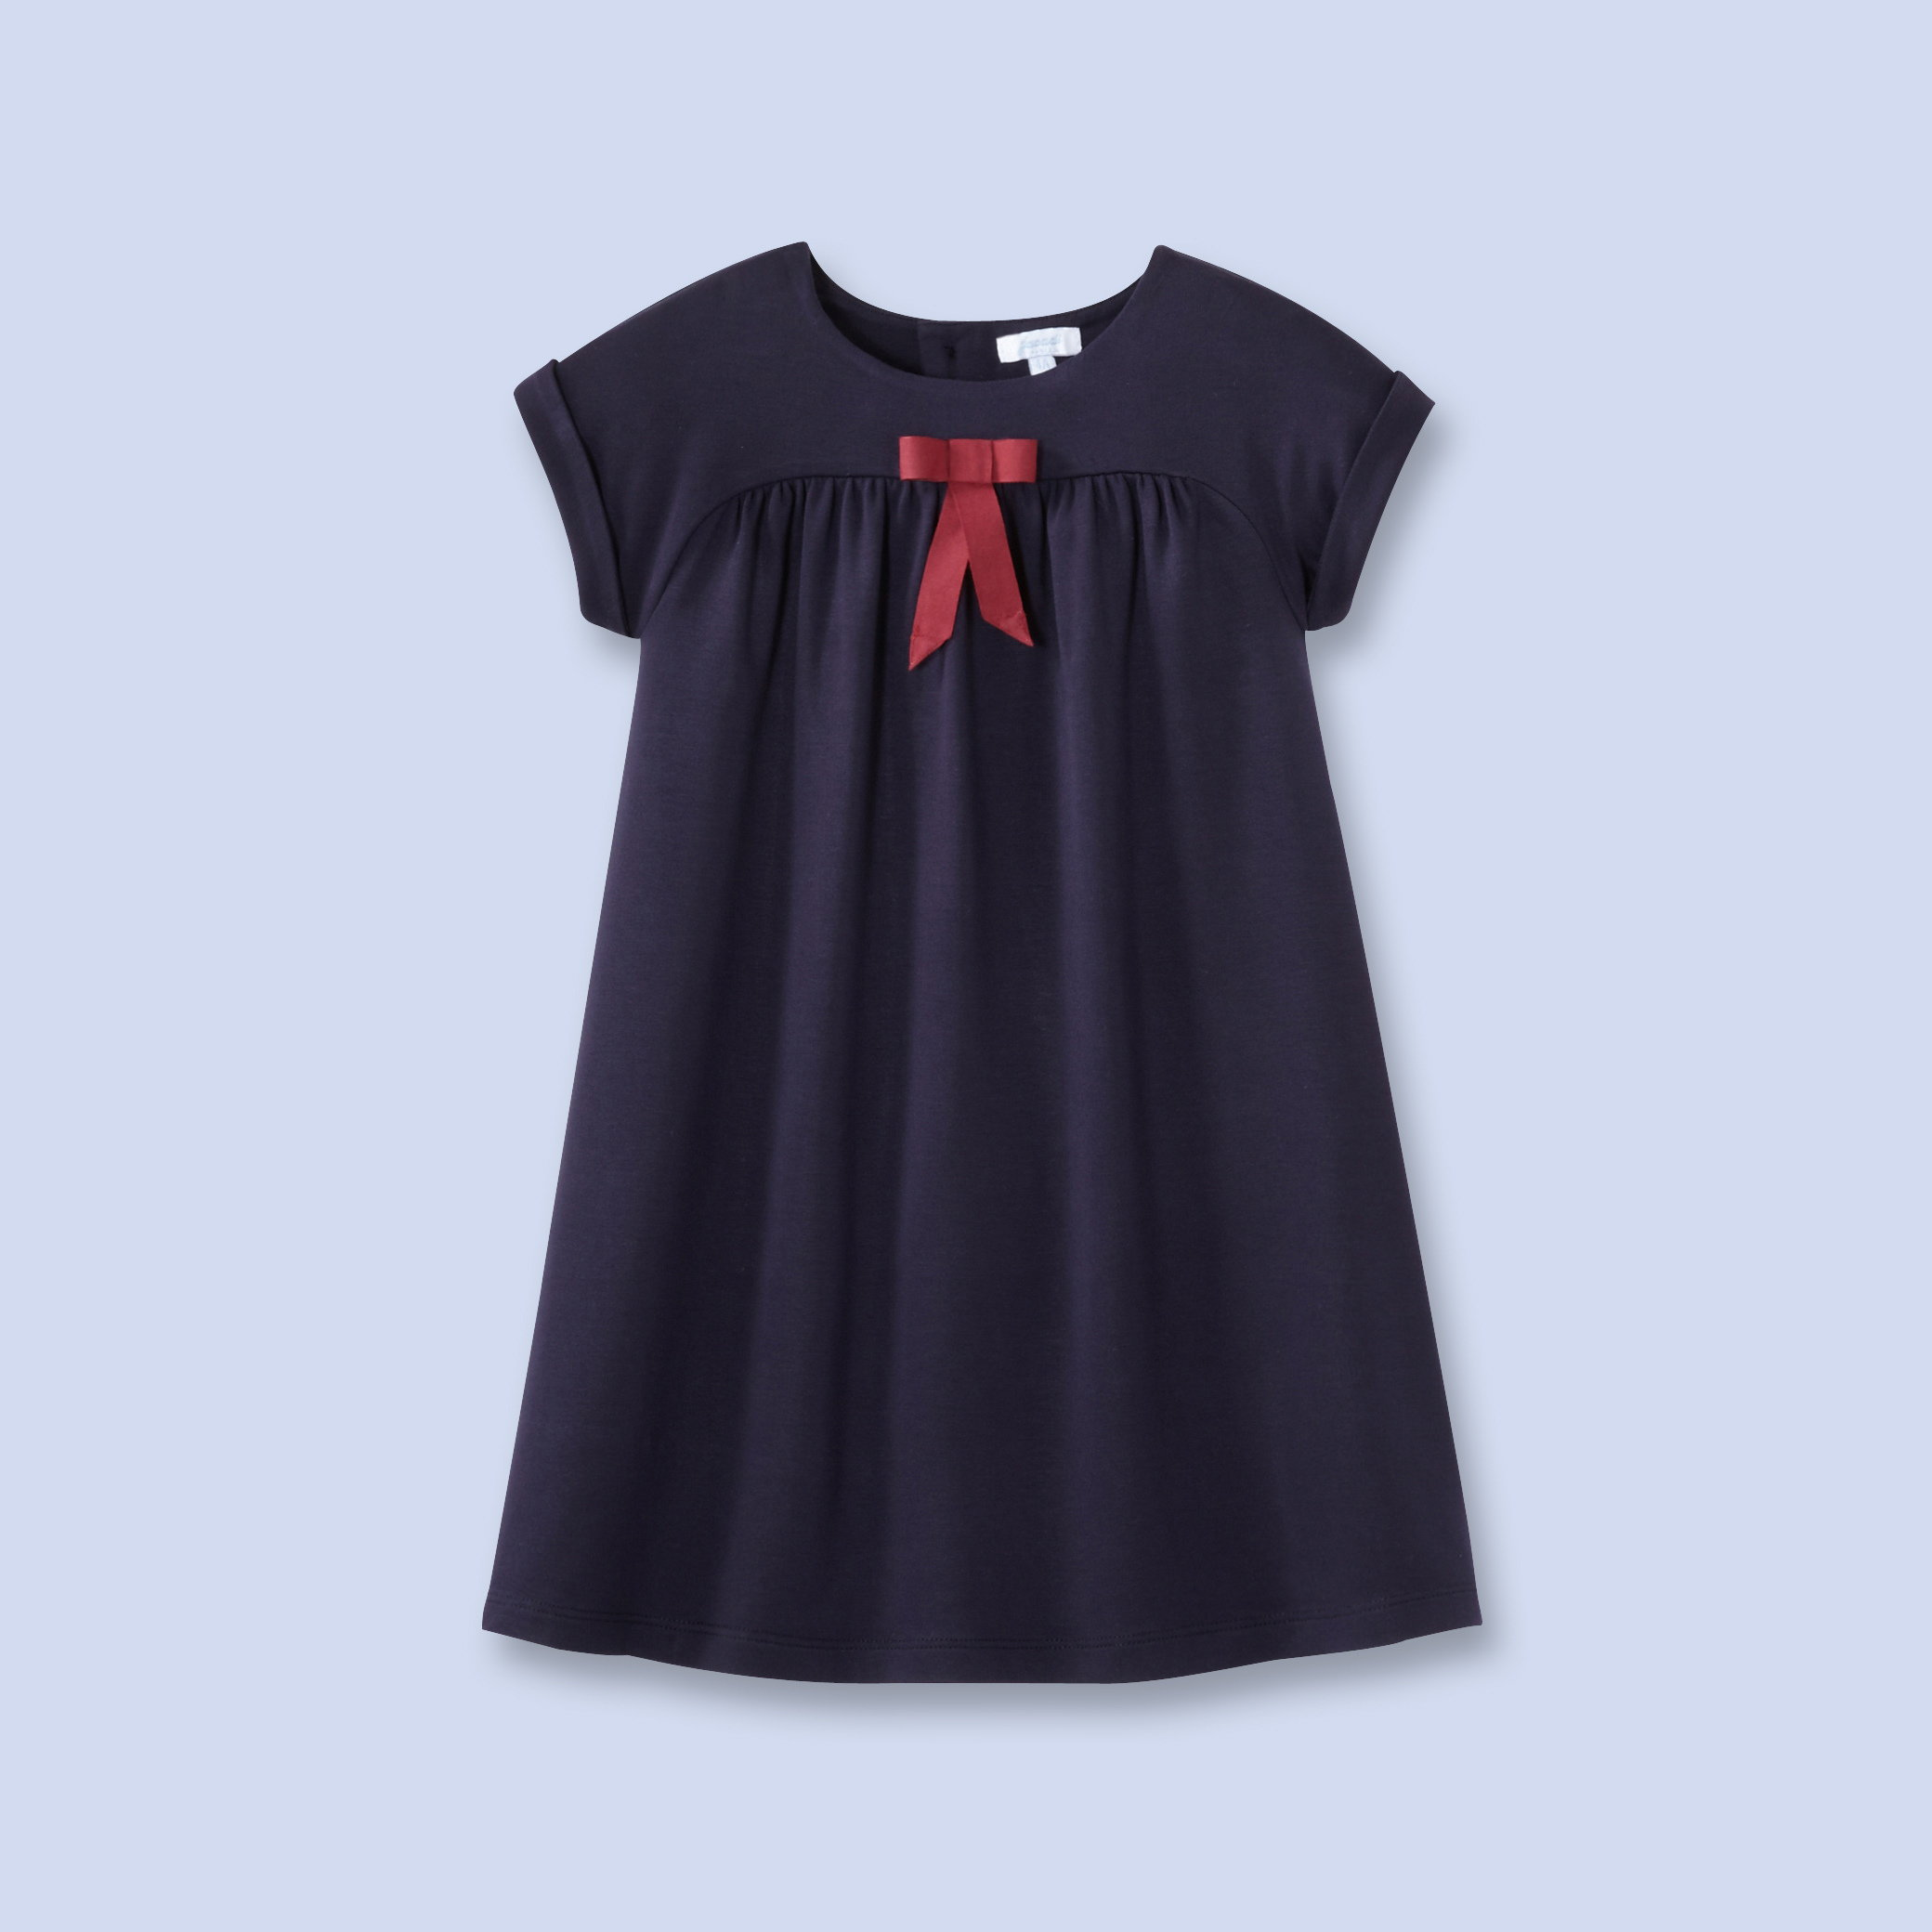 line jersey dress - Girl - NAVY BLUE - from jacadi.us | The